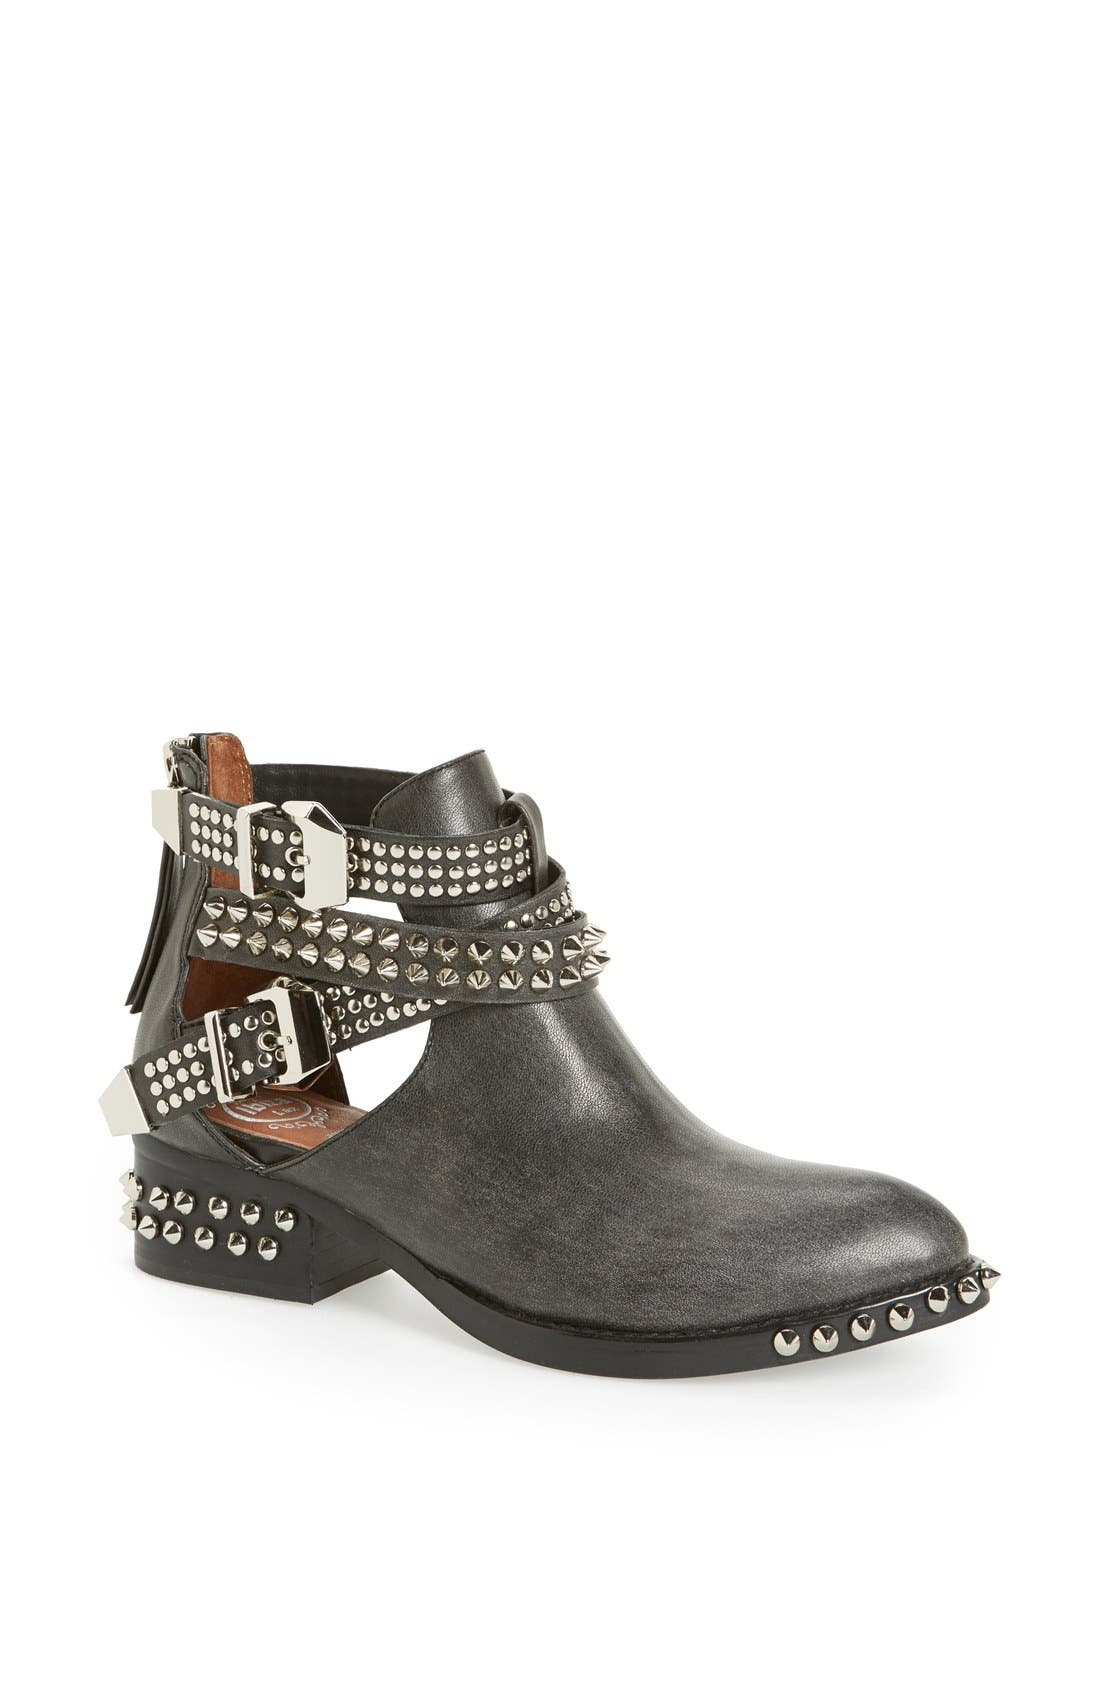 Alternate Image 1 Selected - Jeffrey Campbell 'Everly' Spiked Bootie